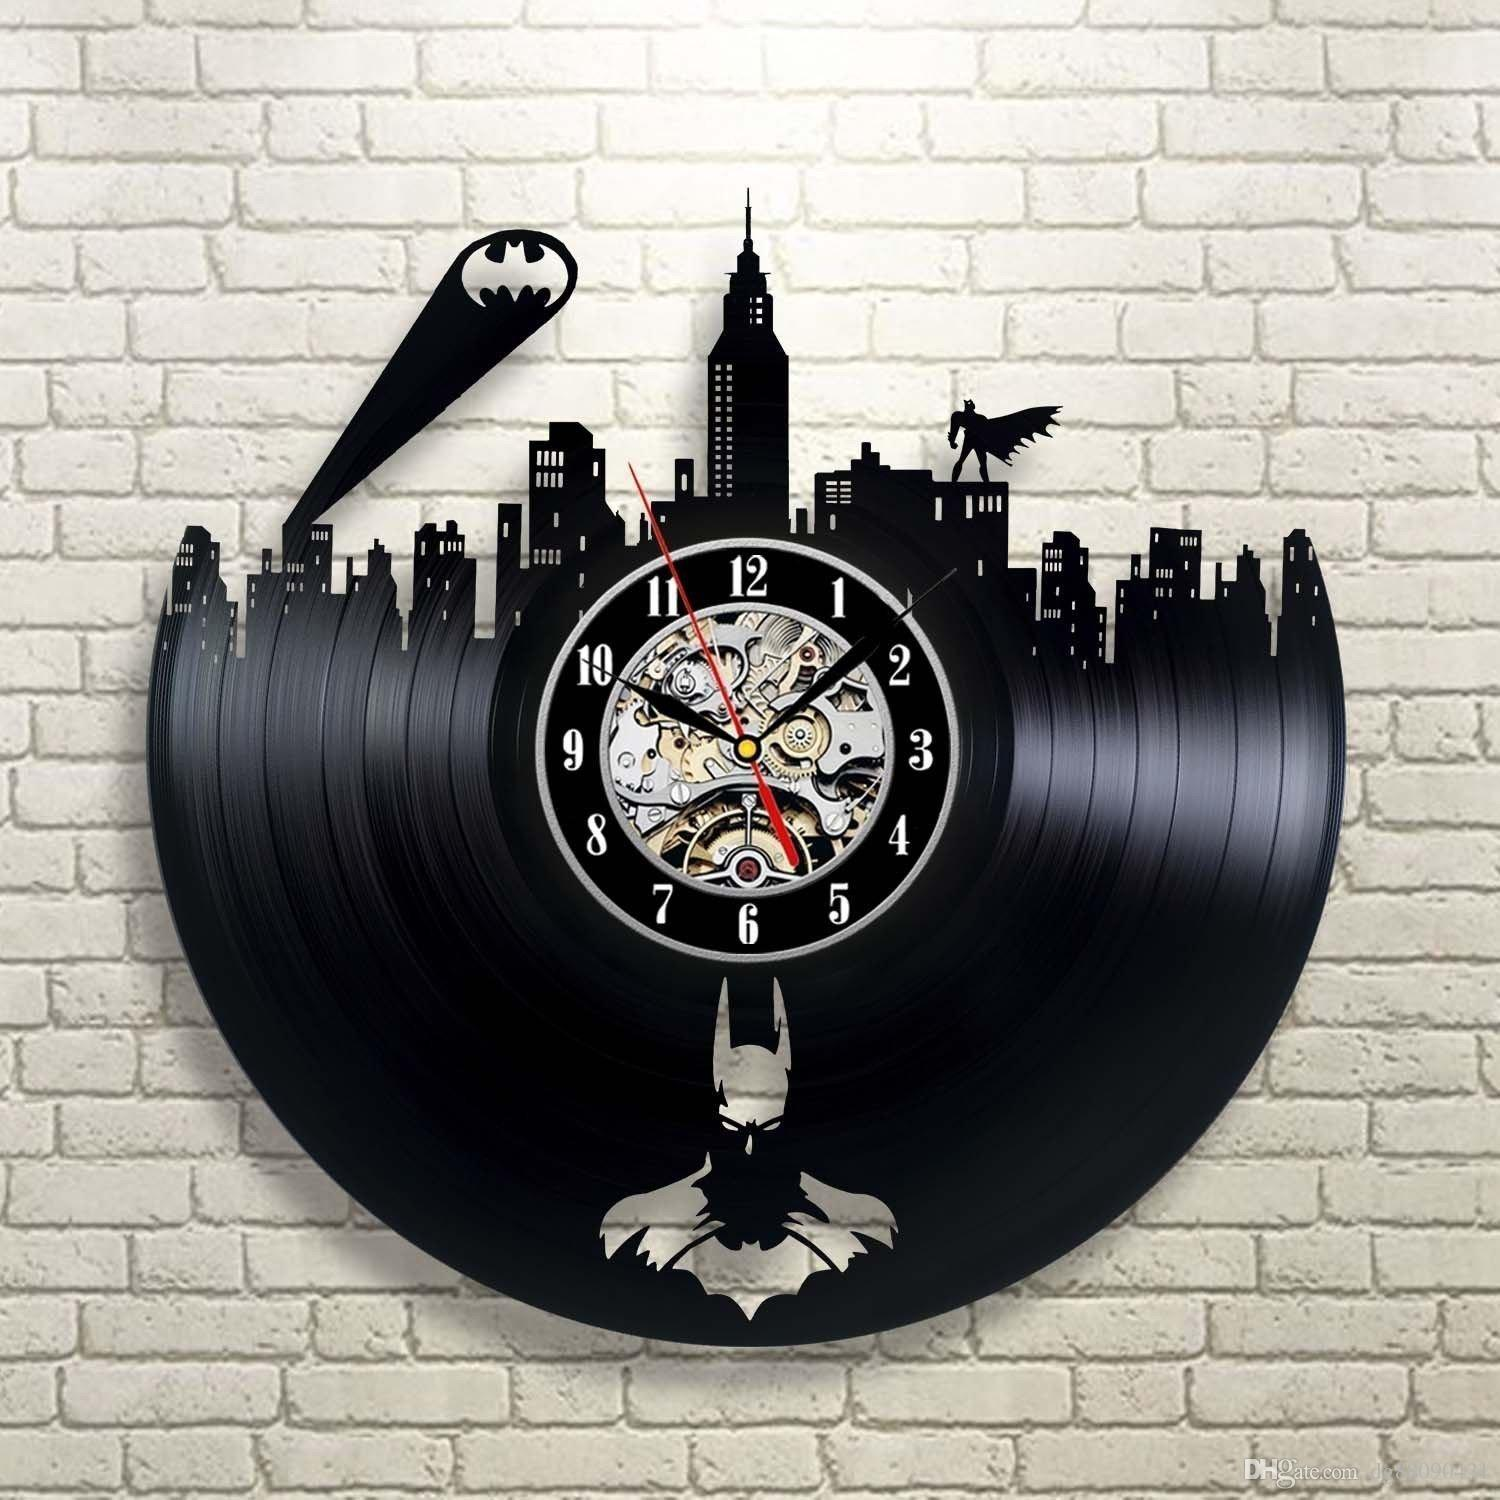 Secondlifeforvinyl eco friendly batman vinyl record concept wall clock batman theme cd vinyl clocks horloge murale decorative modern design large decorative